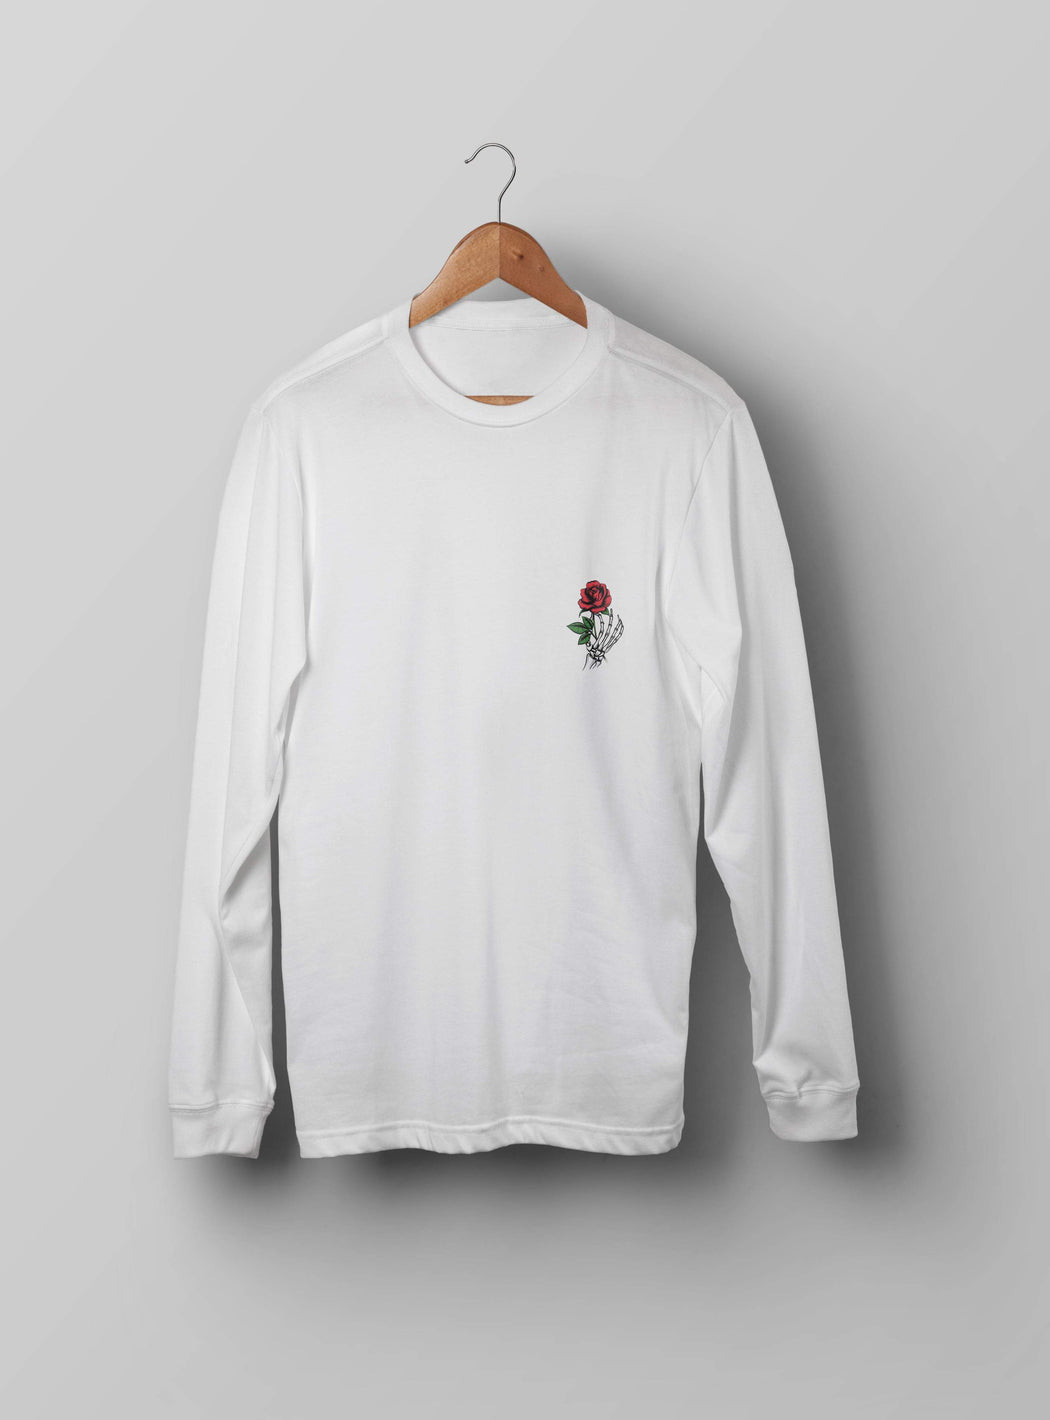 Skeleton With Rose White Sweatshirt